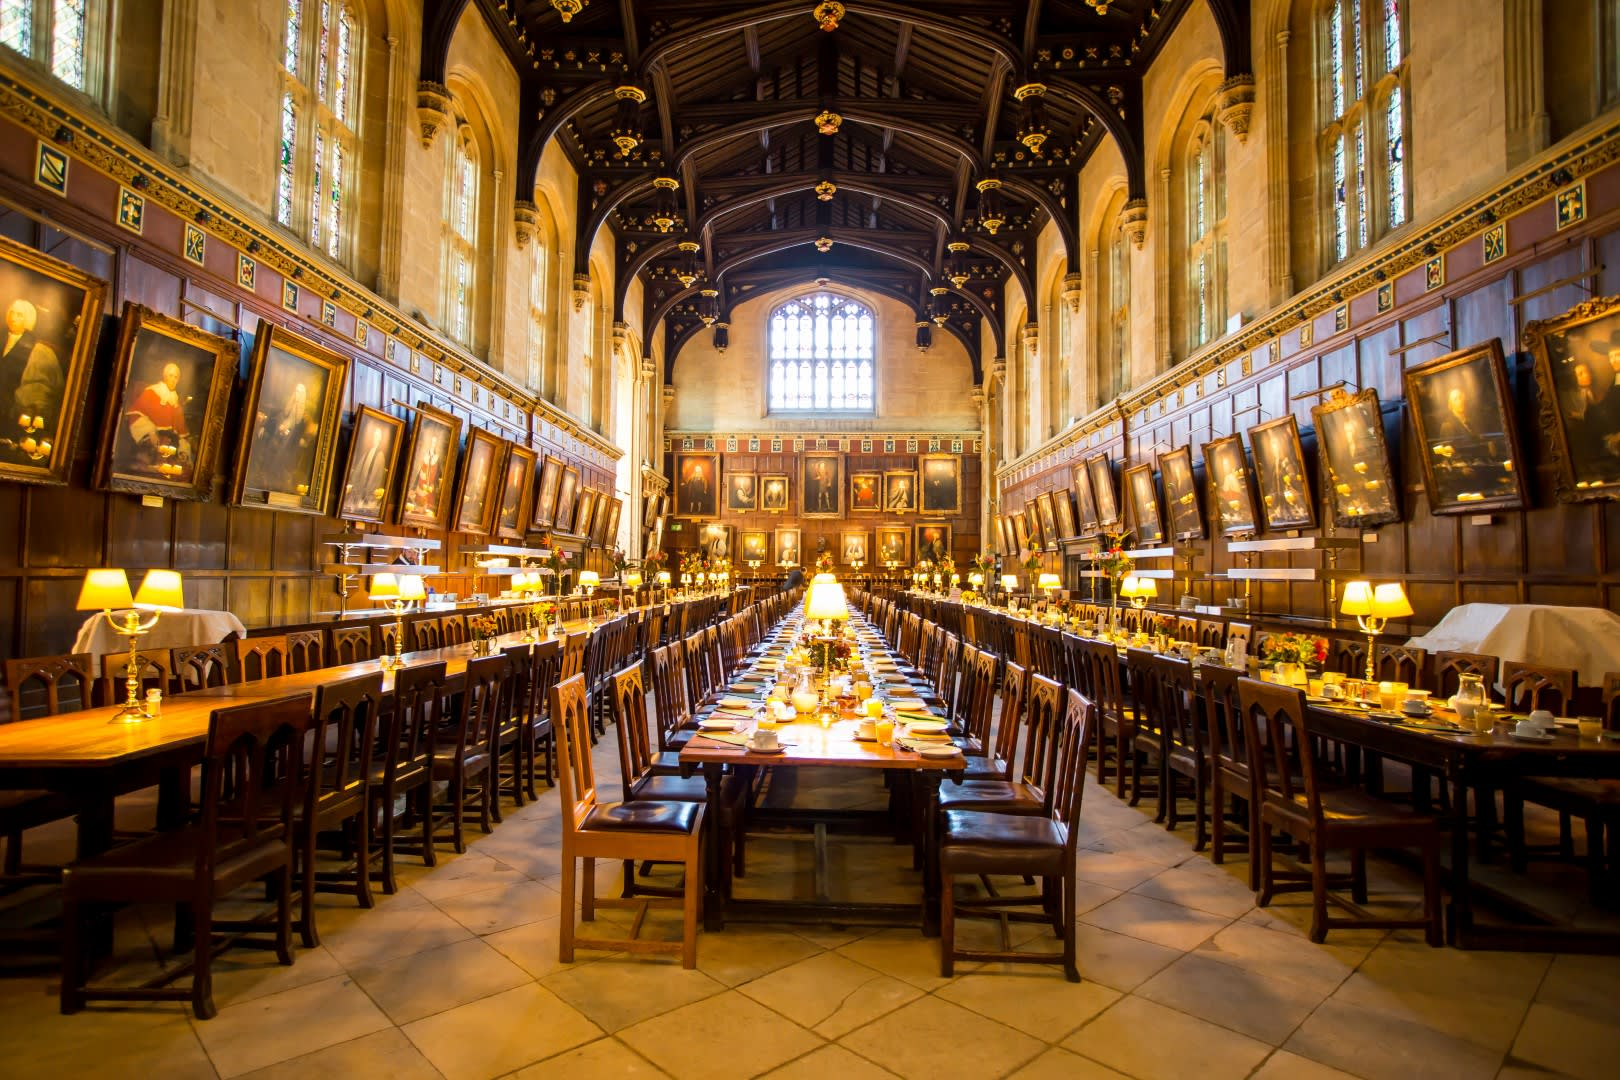 Christ Church Dining Hall University of Oxford